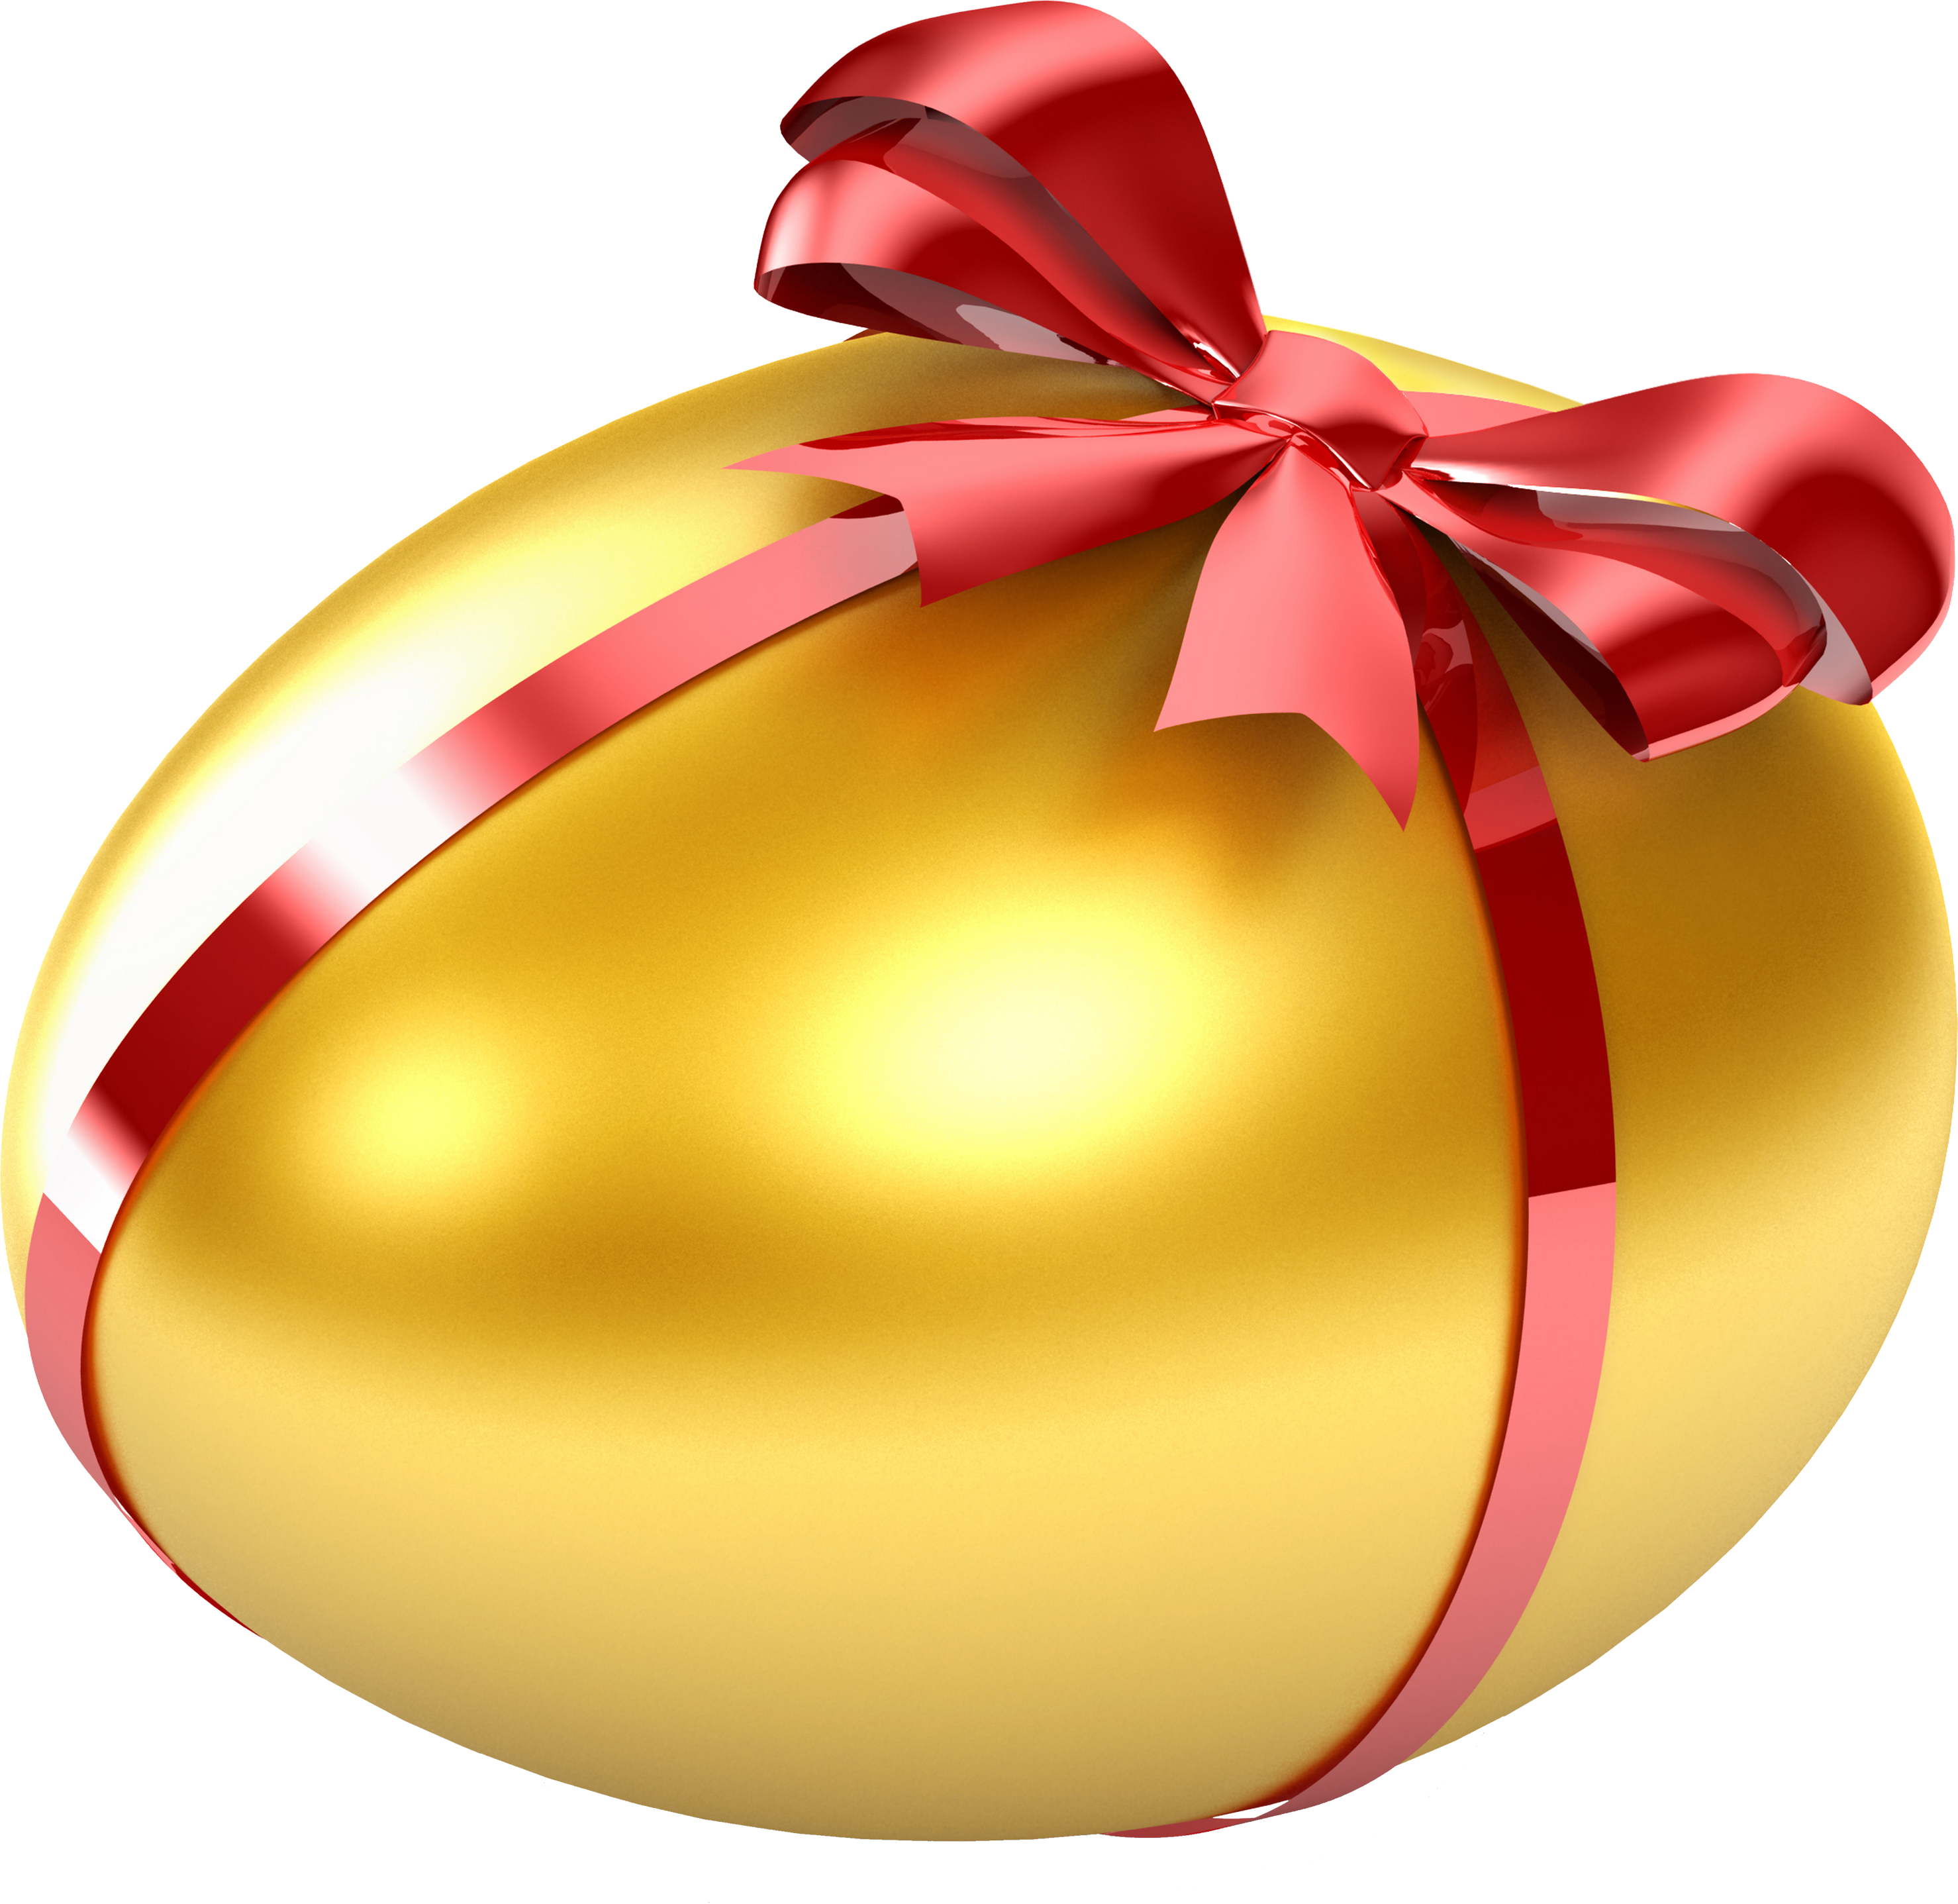 Eggs vector gold. Egg png image purepng